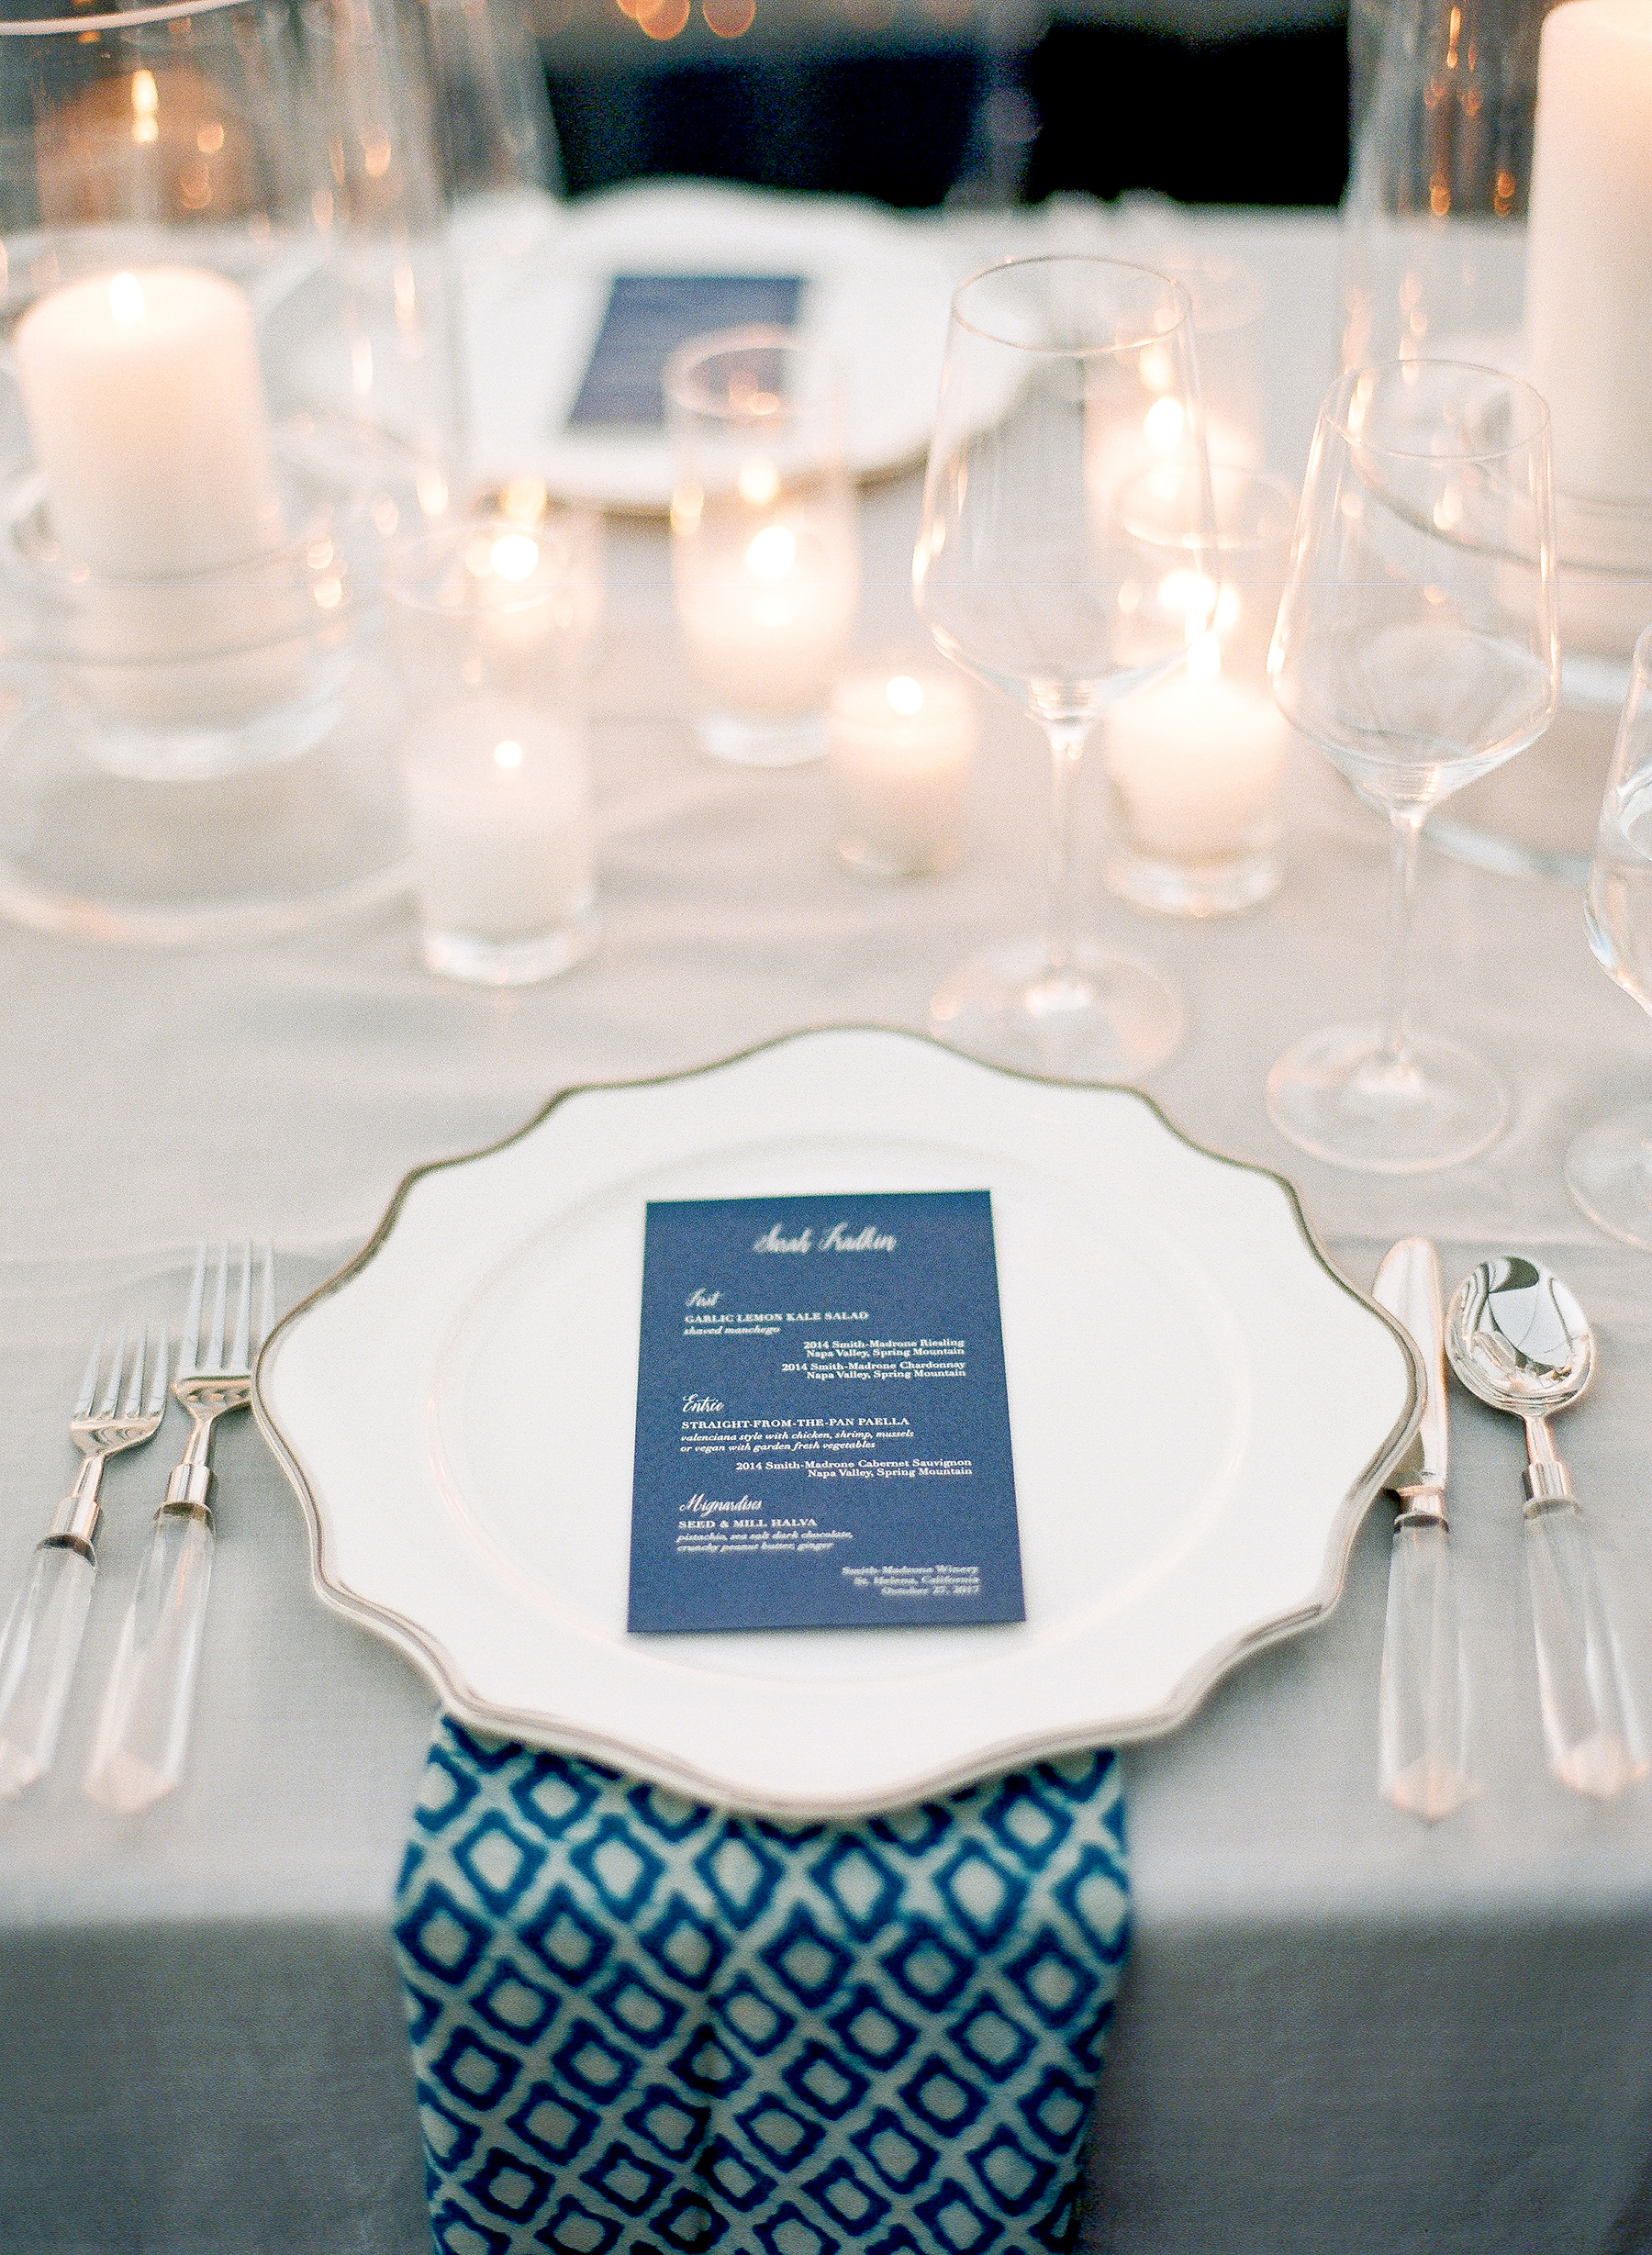 jenna alok welcome party place setting